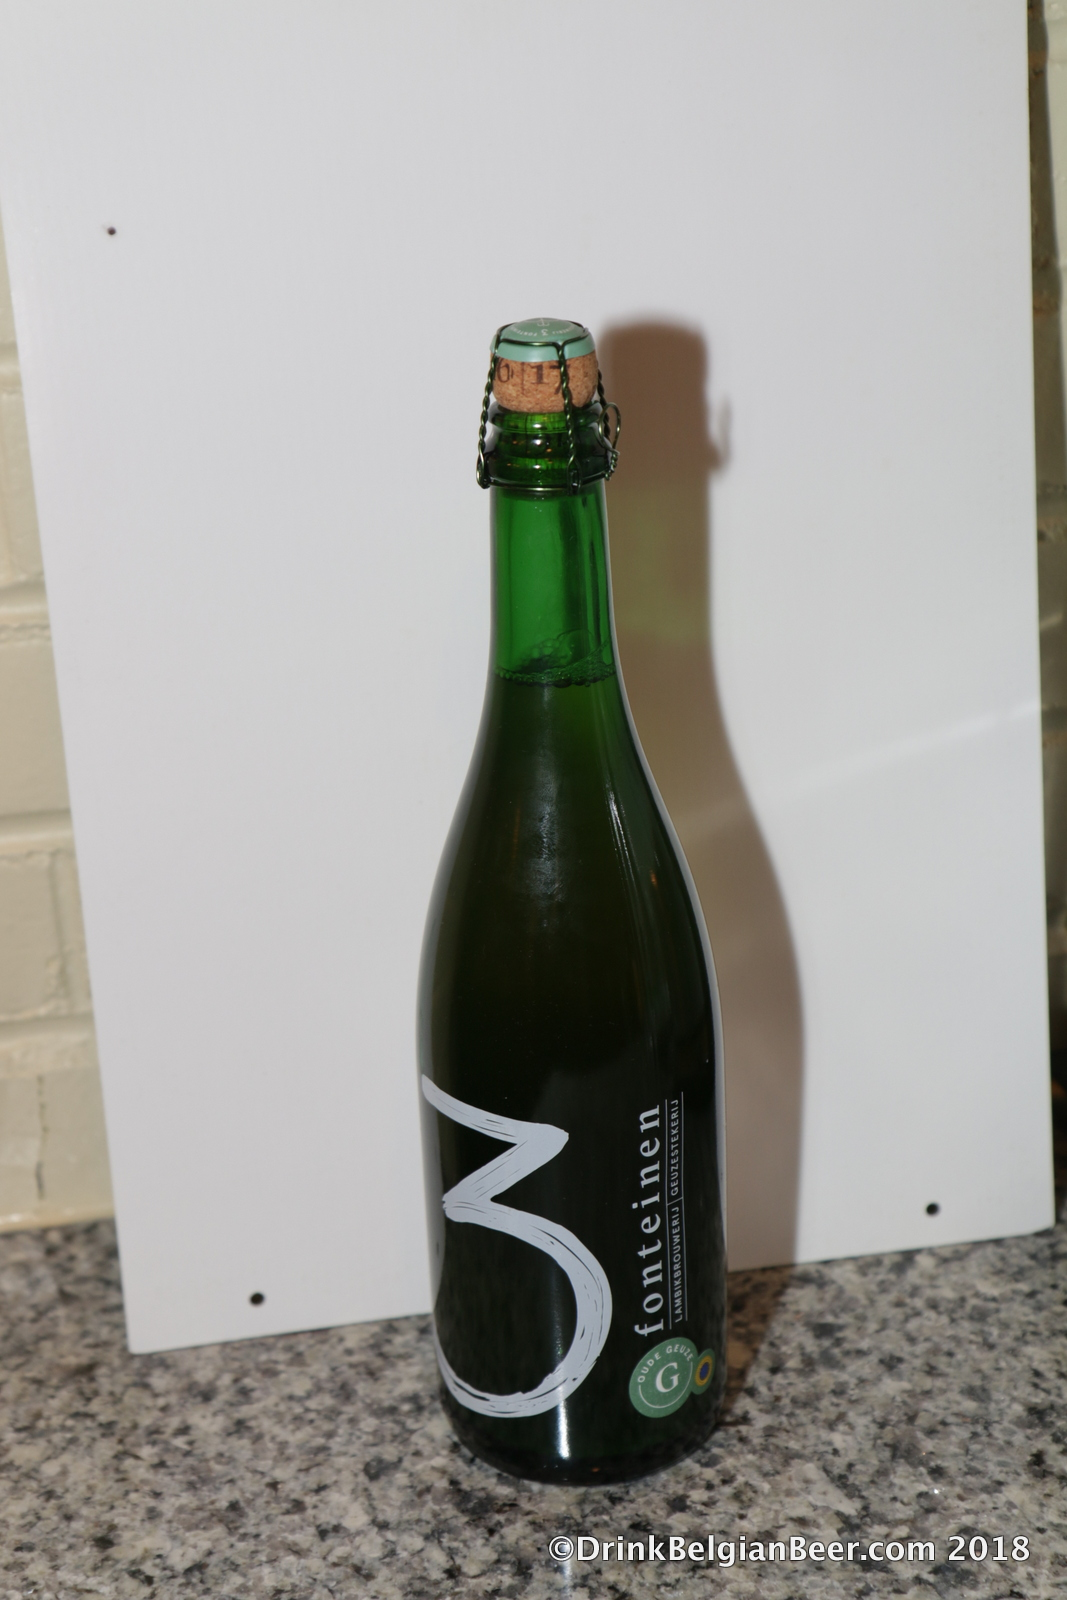 3 Fonteinen Oude Geuze, in its new packaging.